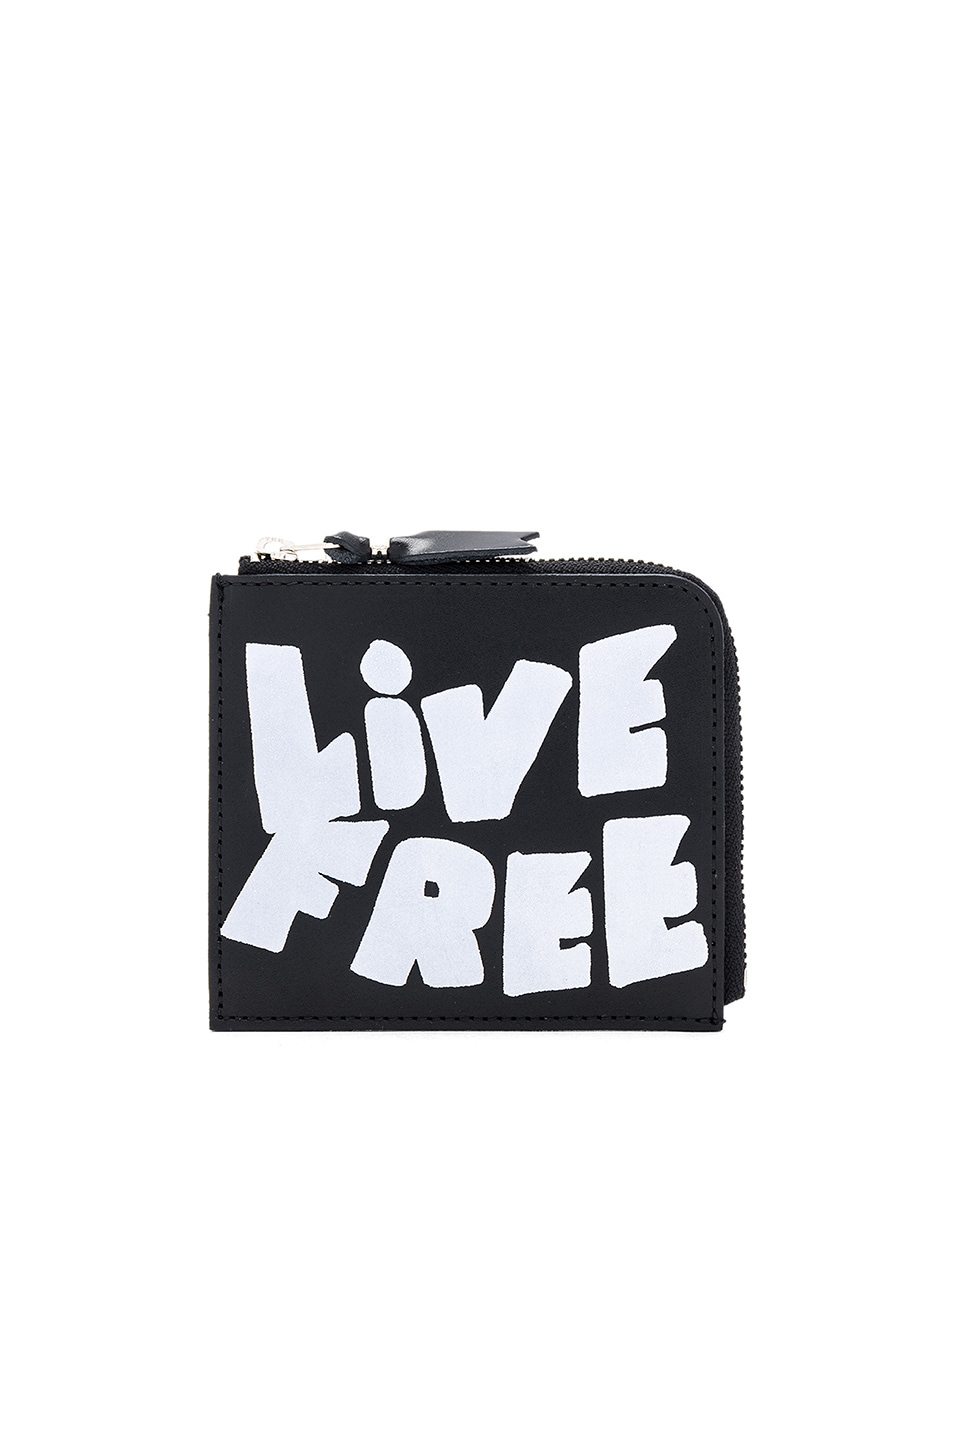 COMME DES GARCONS PLAY MESSAGE WALLET IN BLACK